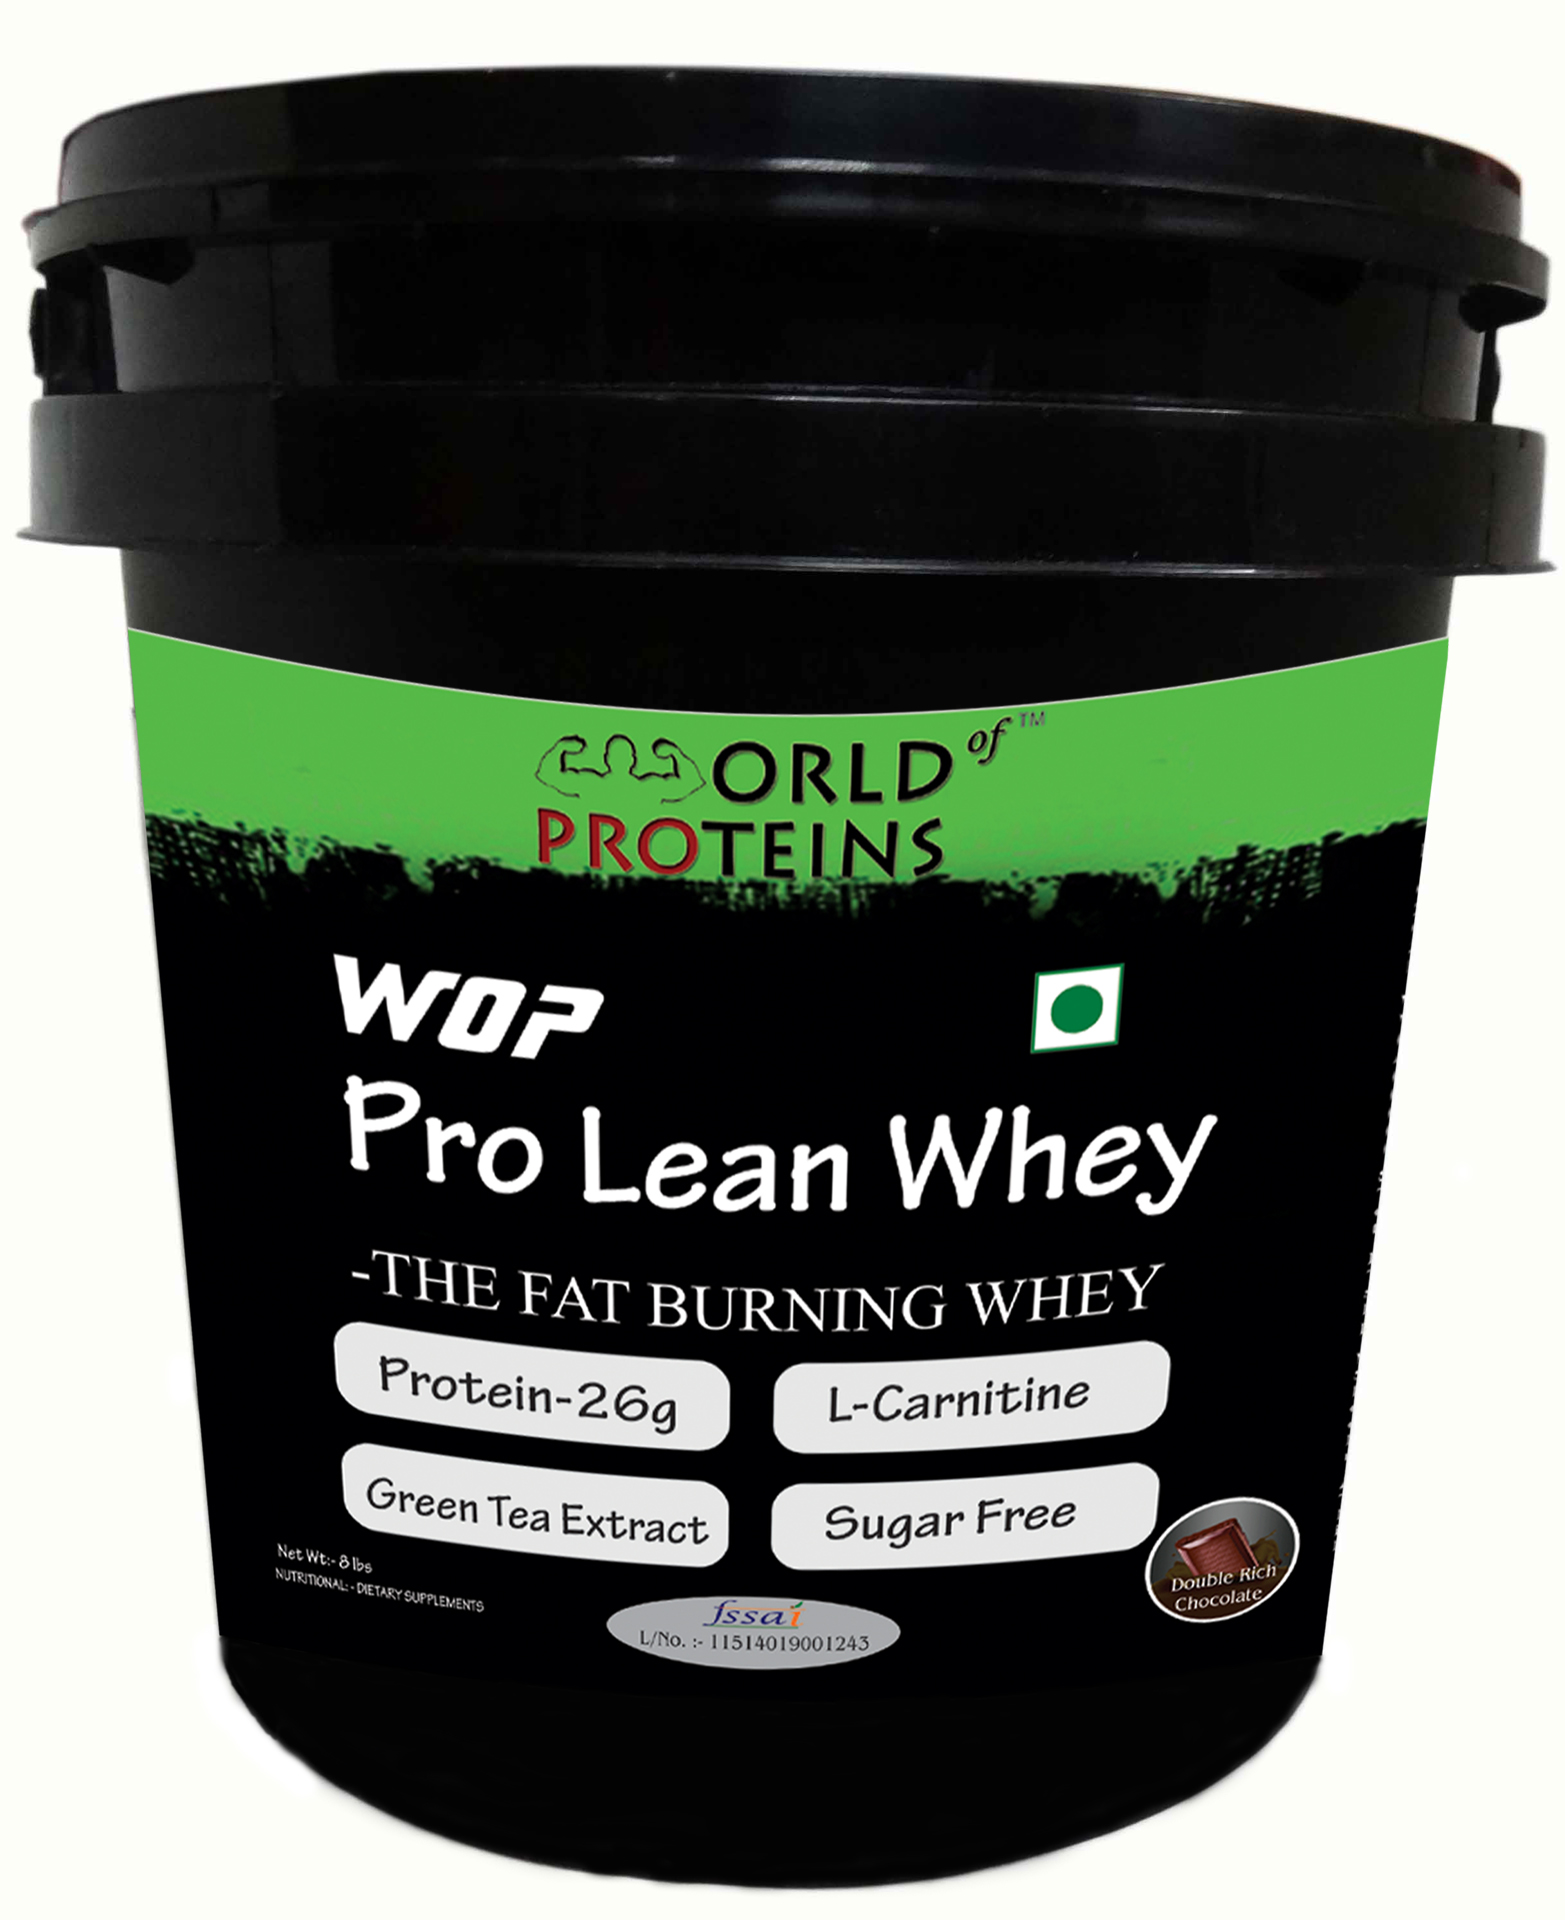 size_013431_WOP_Pro_Lean_Whey_8_Lbs_Chocolate_copy.jpg